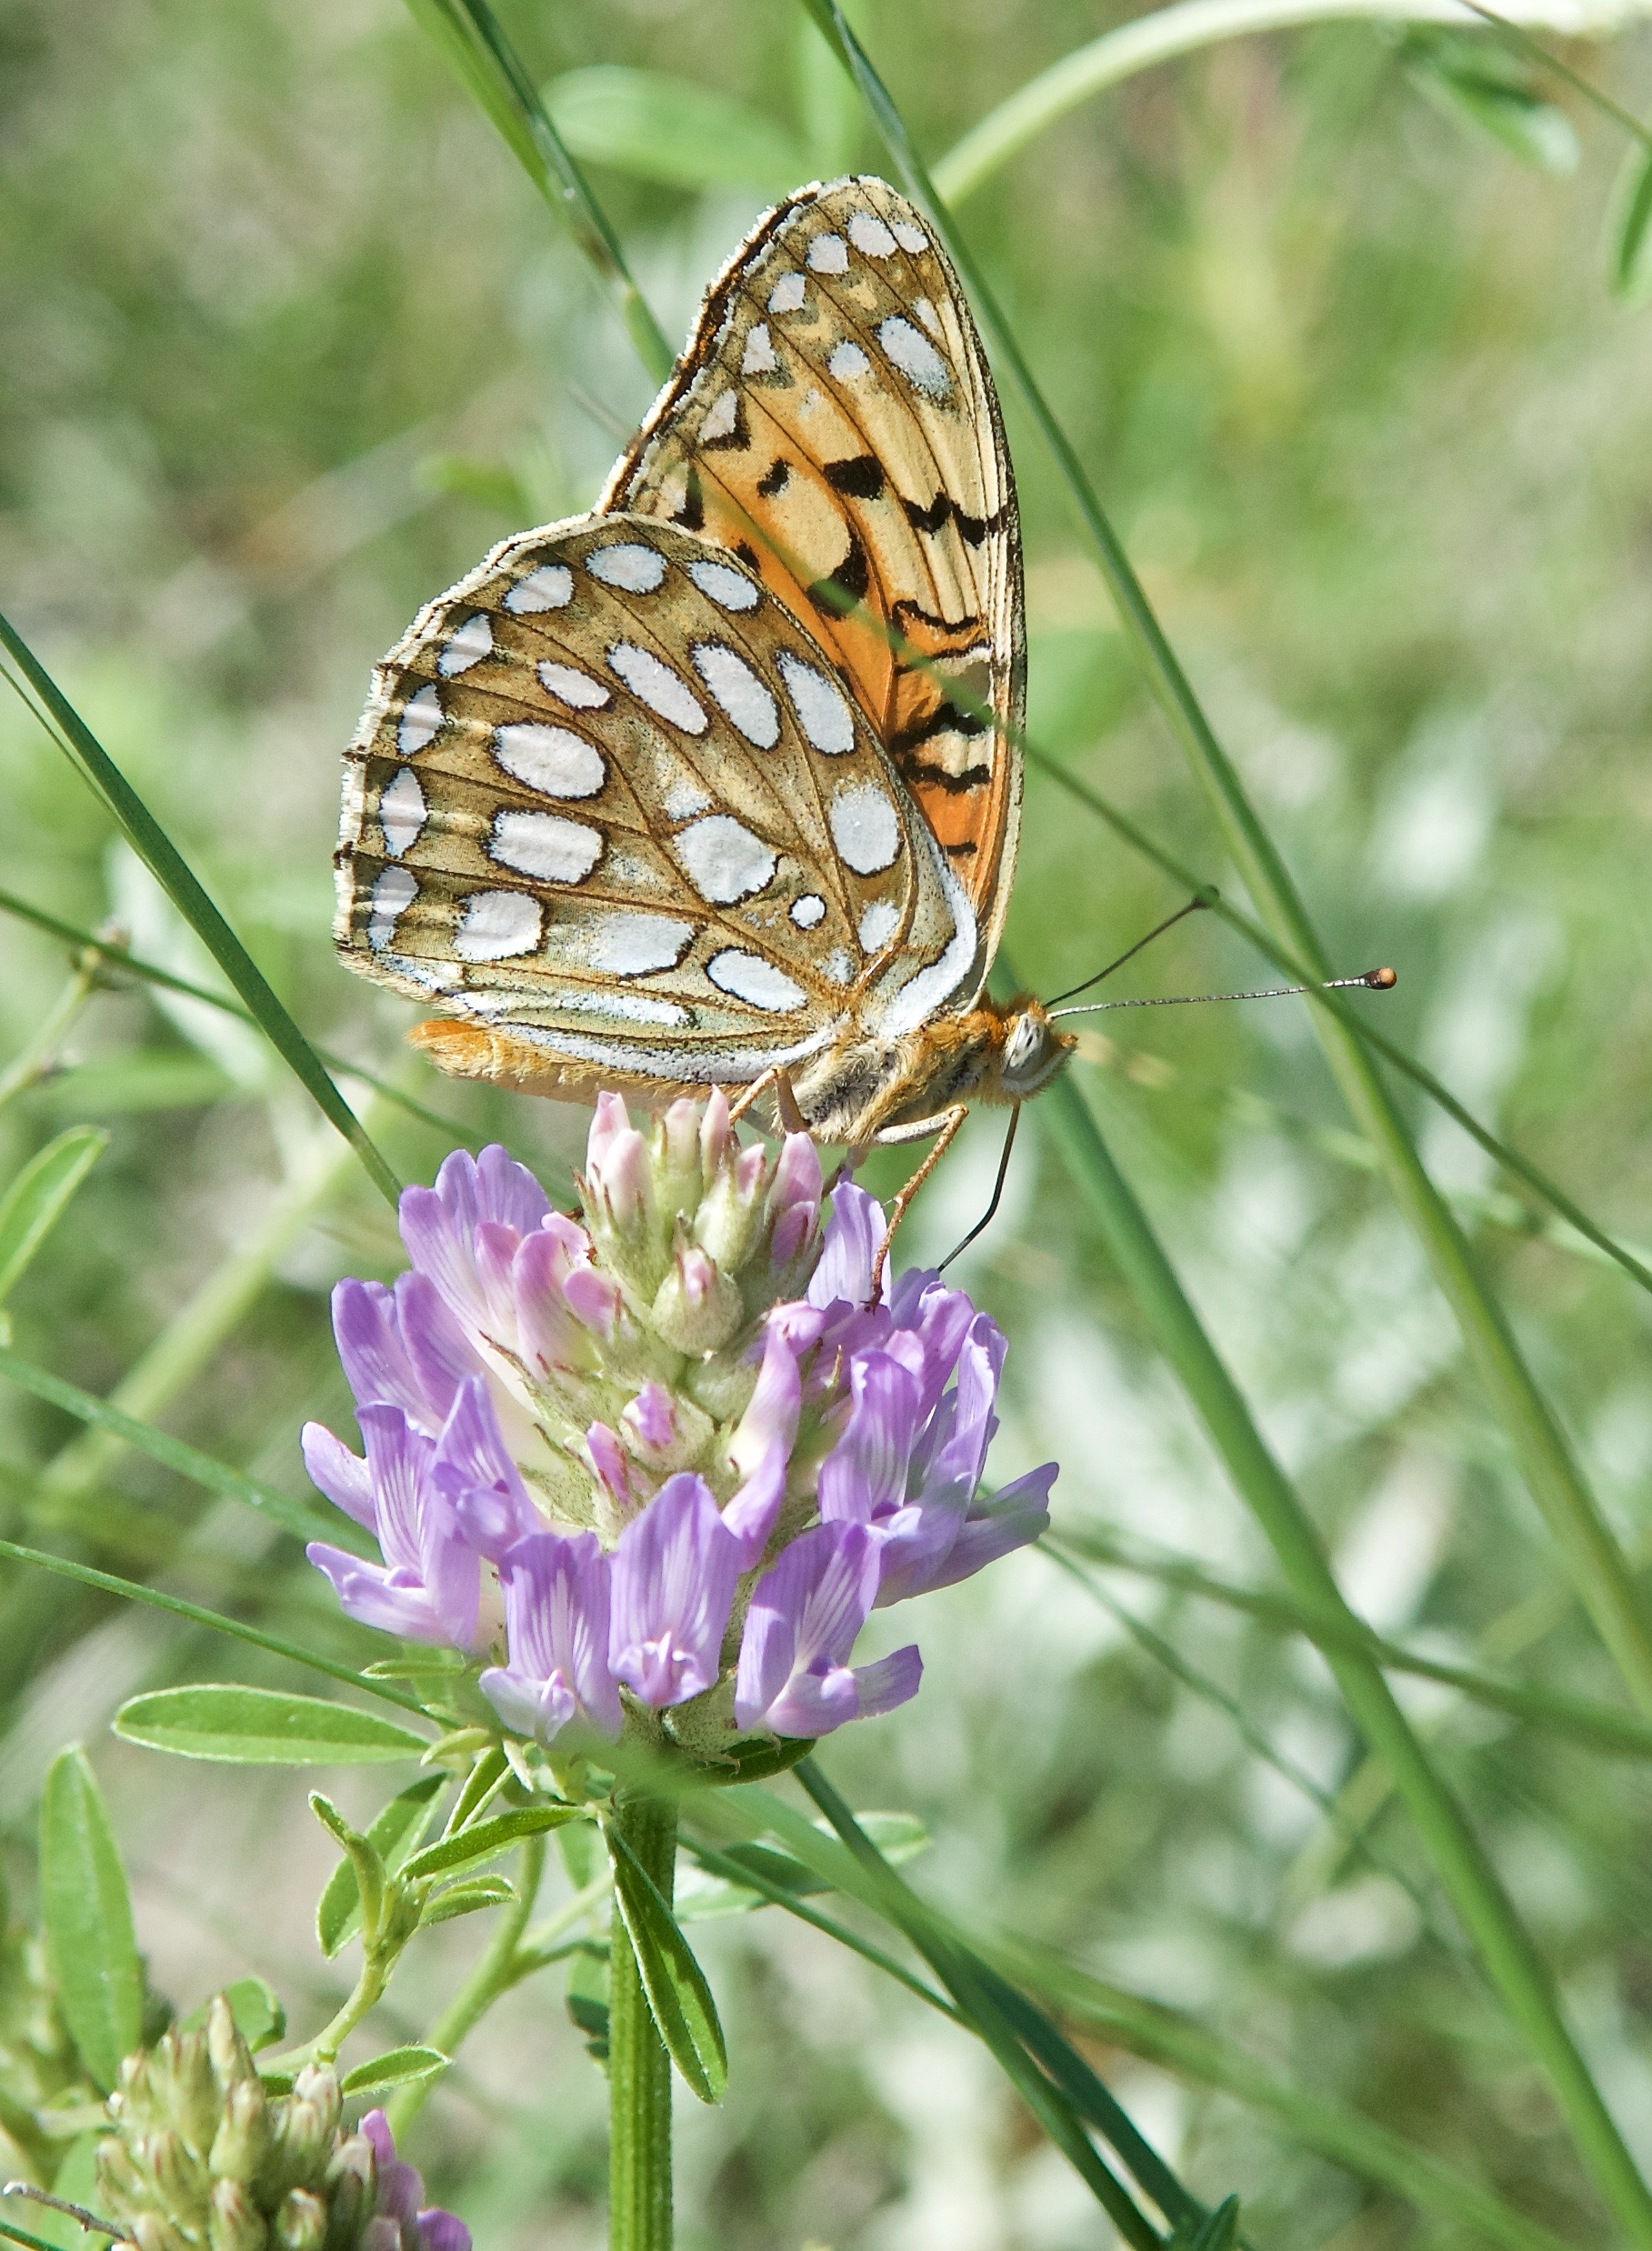 Callippe Fritillary (Speyeria callippe meadii) on a Field Milkvetch